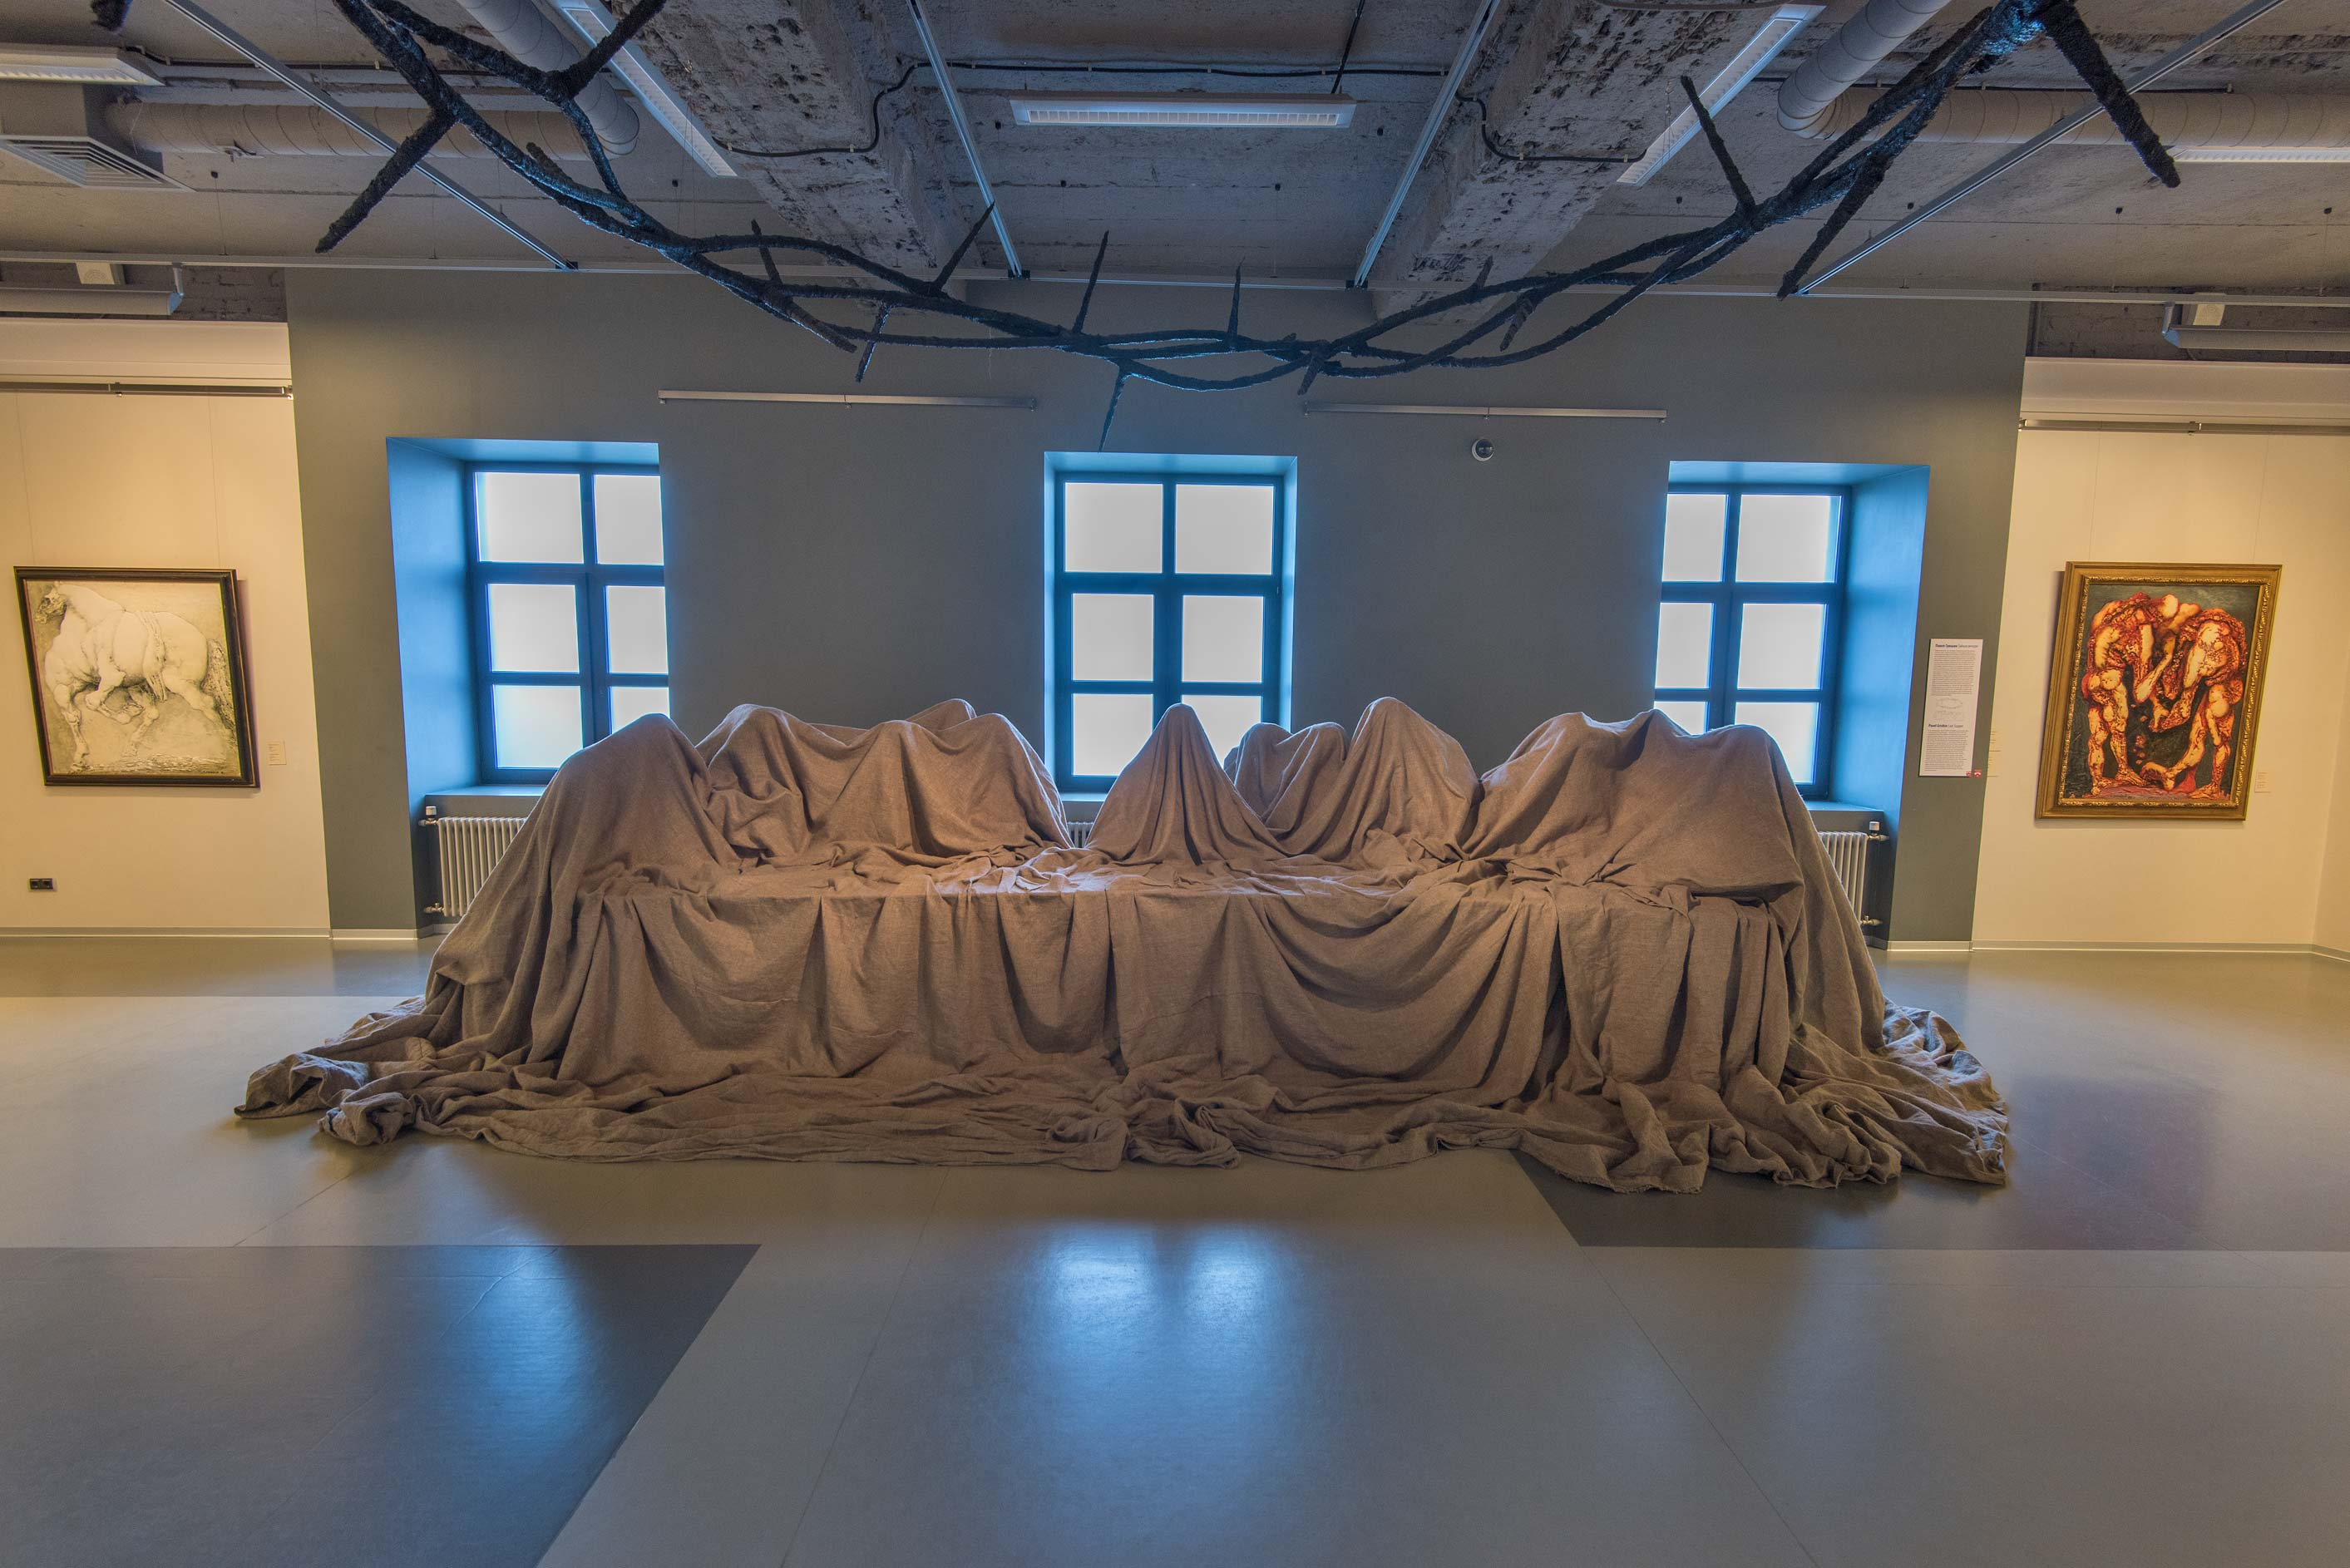 Art installation Last Supper by Pavel Grishin in...Art. St.Petersburg, Russia